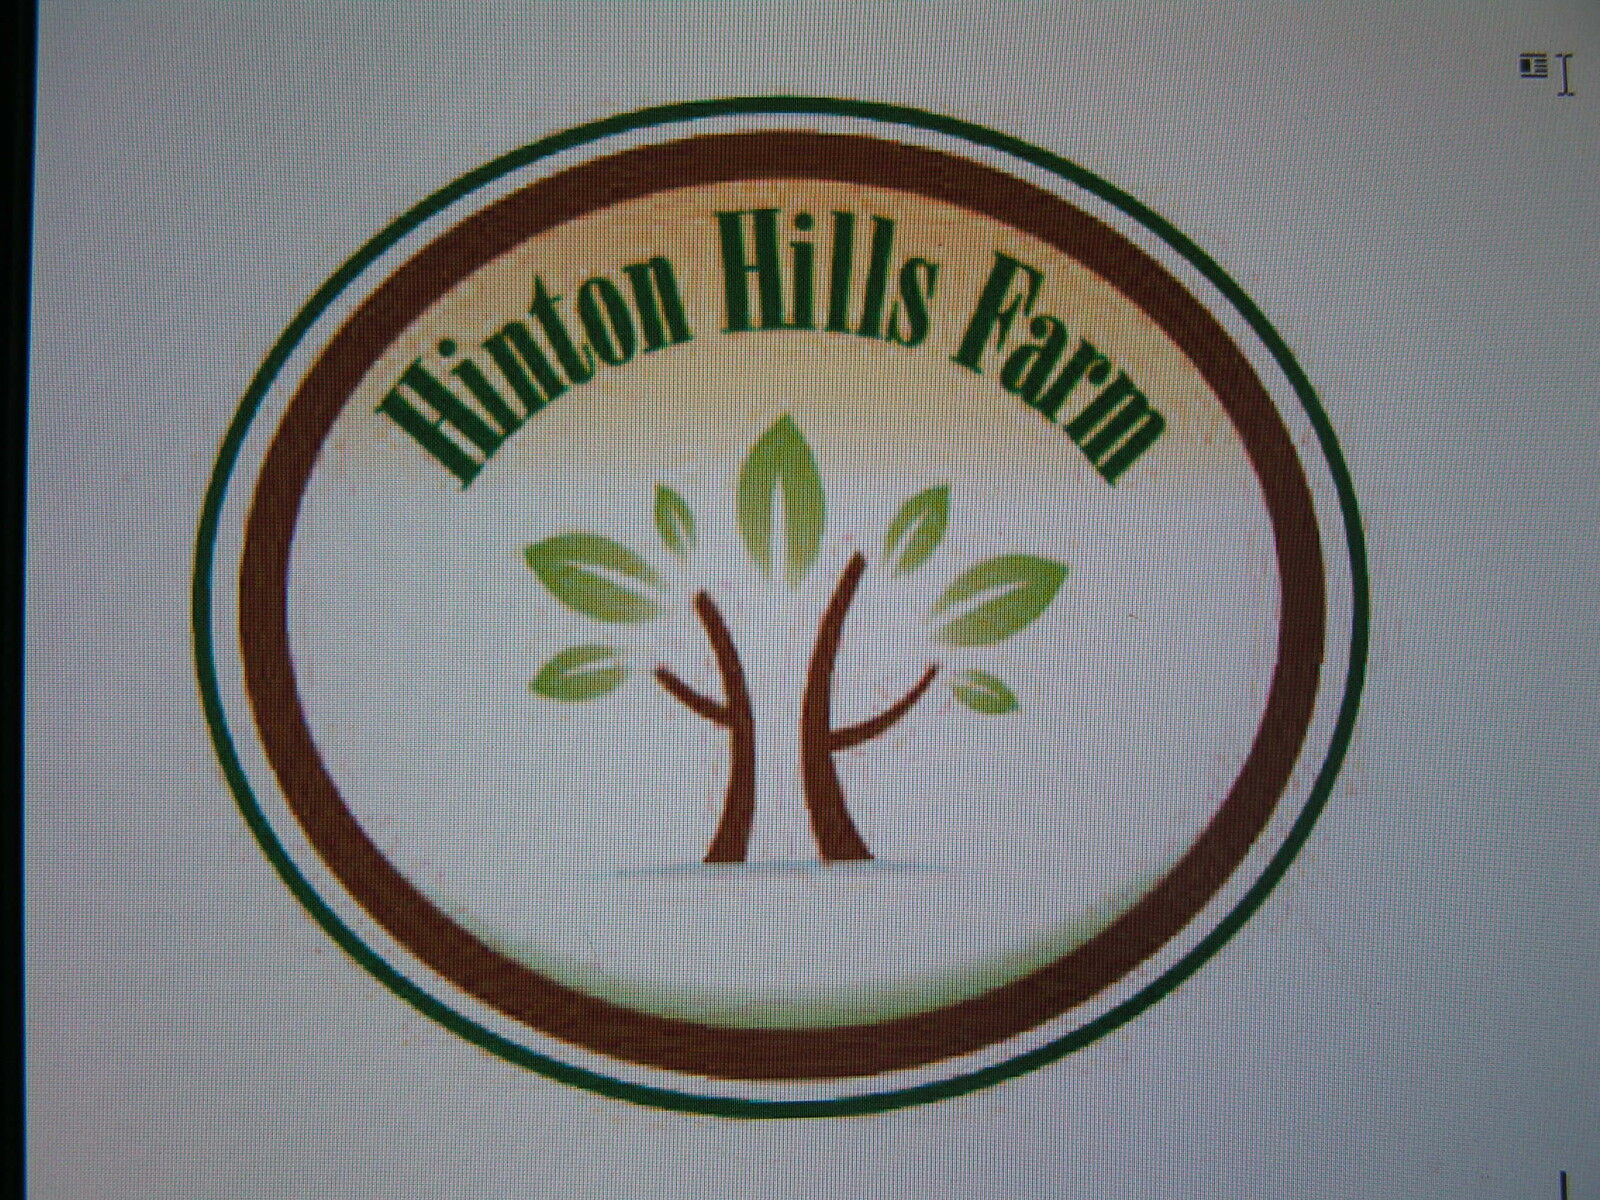 HINTON HILLS FARMS